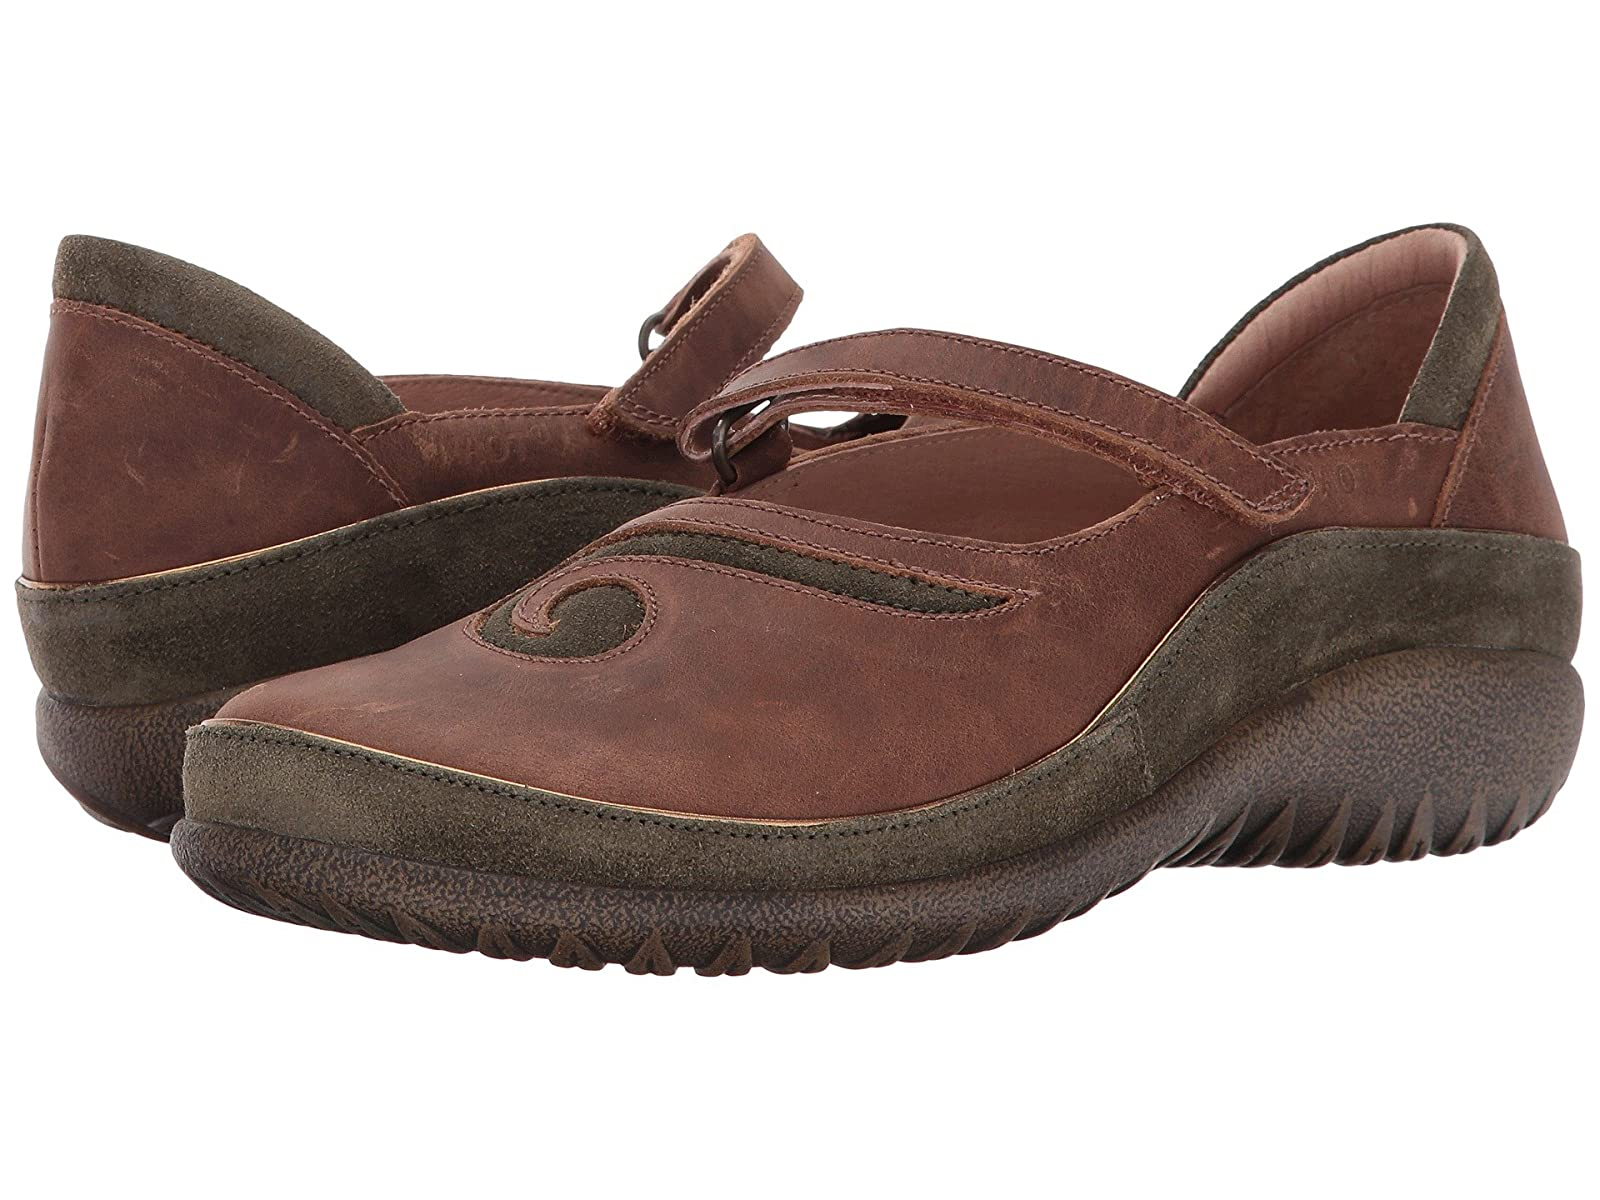 Naot MataiAtmospheric grades have affordable shoes